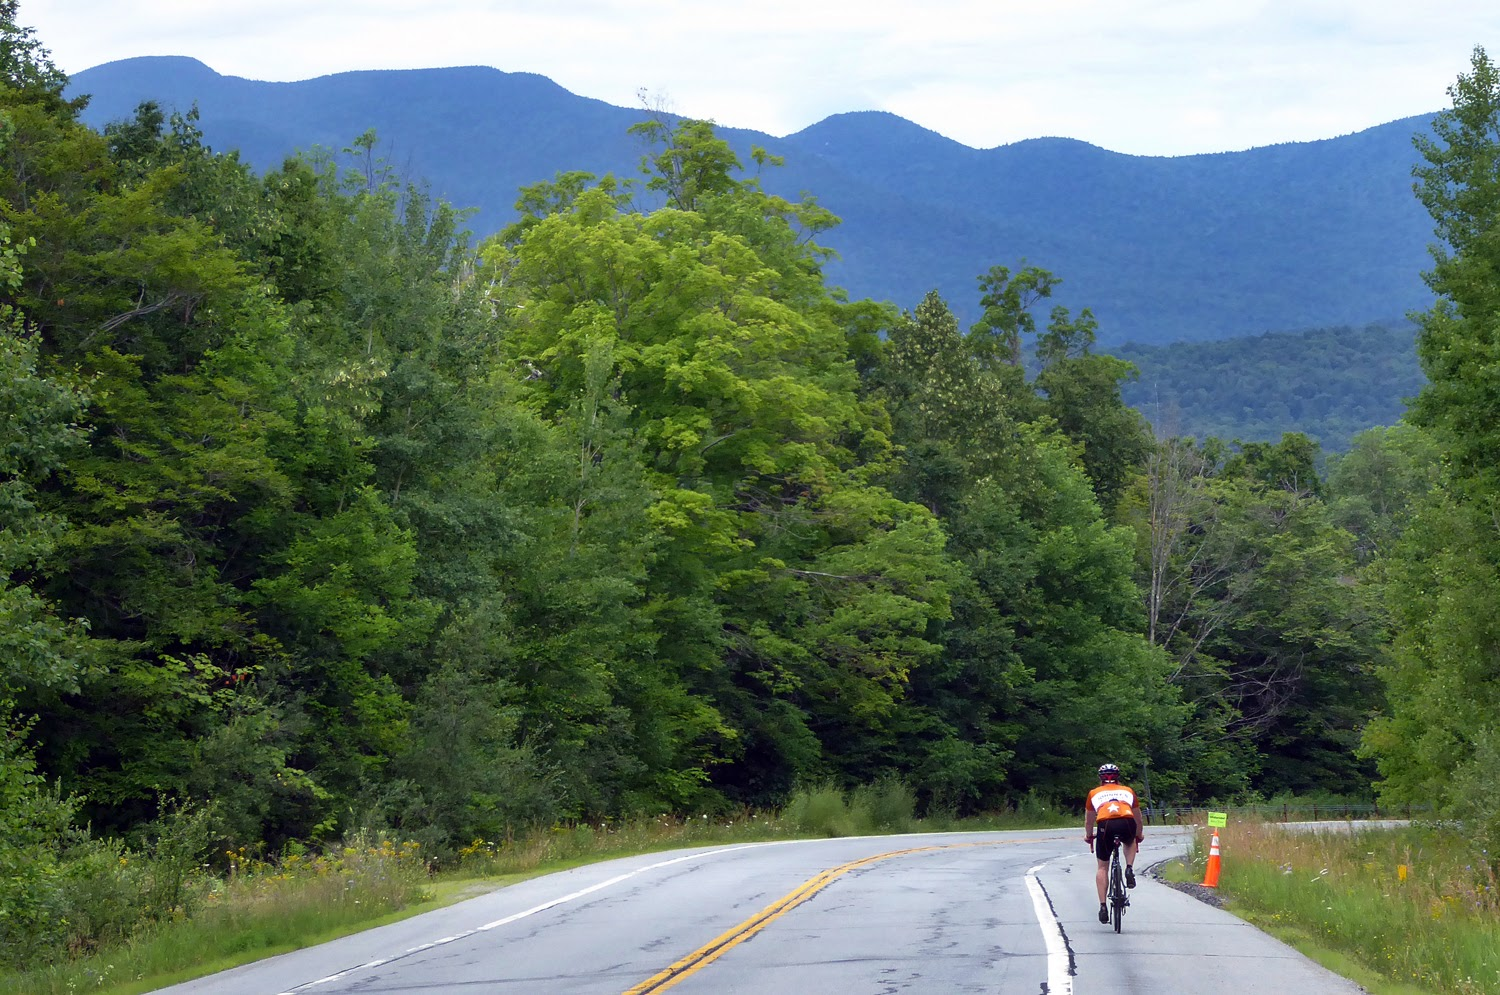 Evan Mayfield of Baltimore, MD, heads north on Route 30 toward Indian Lake. Copyright by Dave Kraus/ Krausgrafik.com